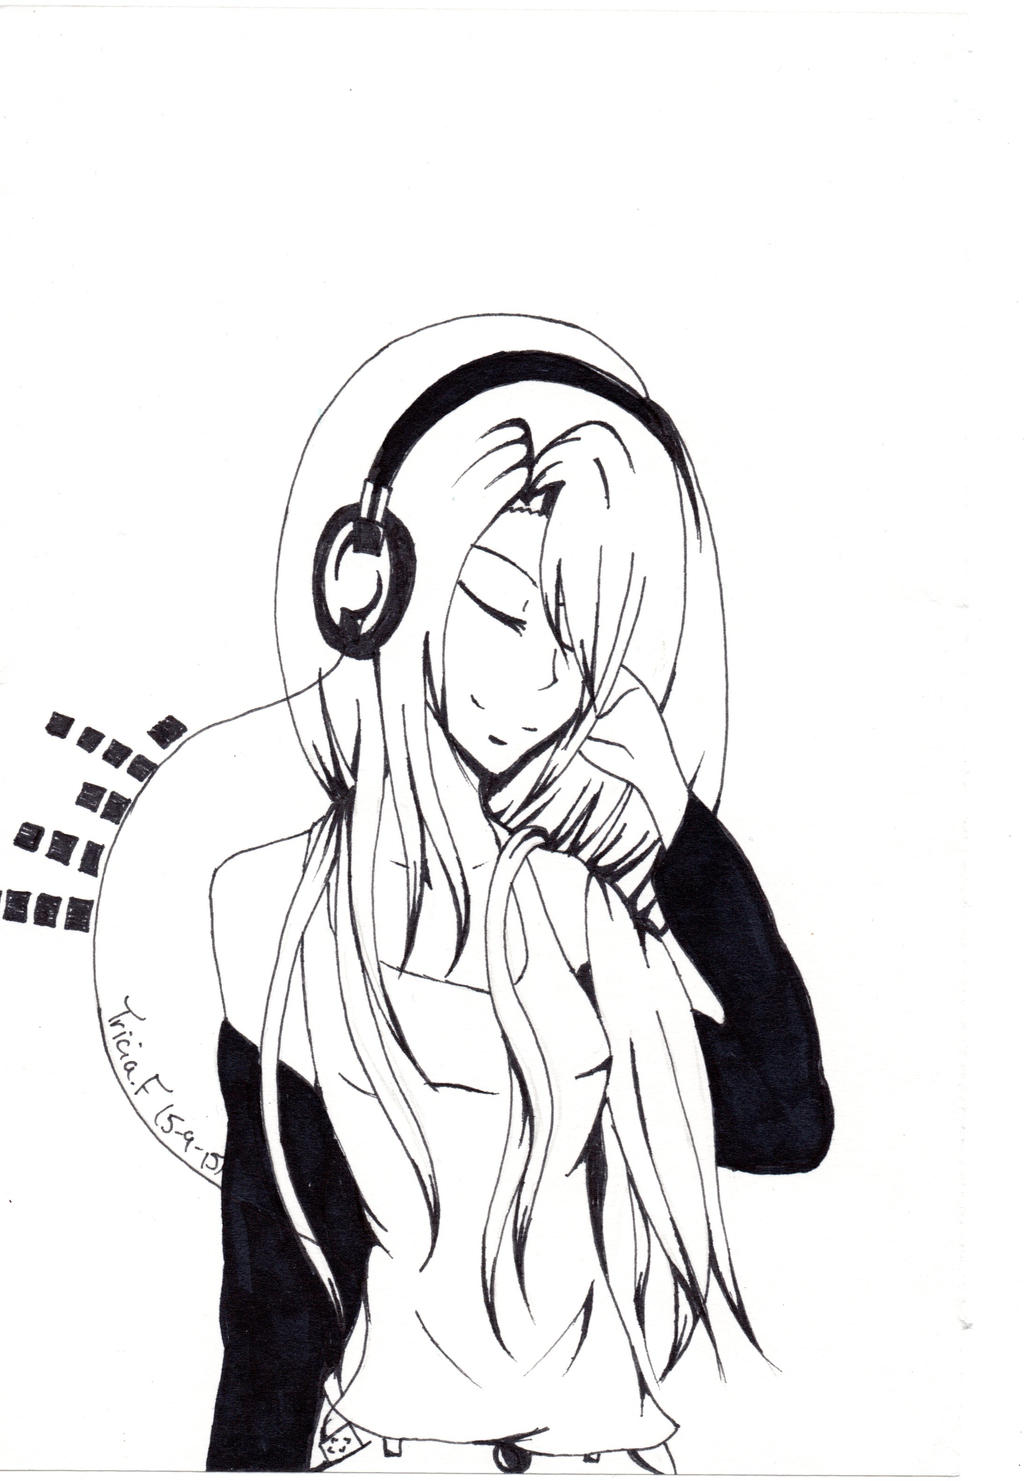 Line Art Headphones : Headphone anime girl by triciacreations on deviantart